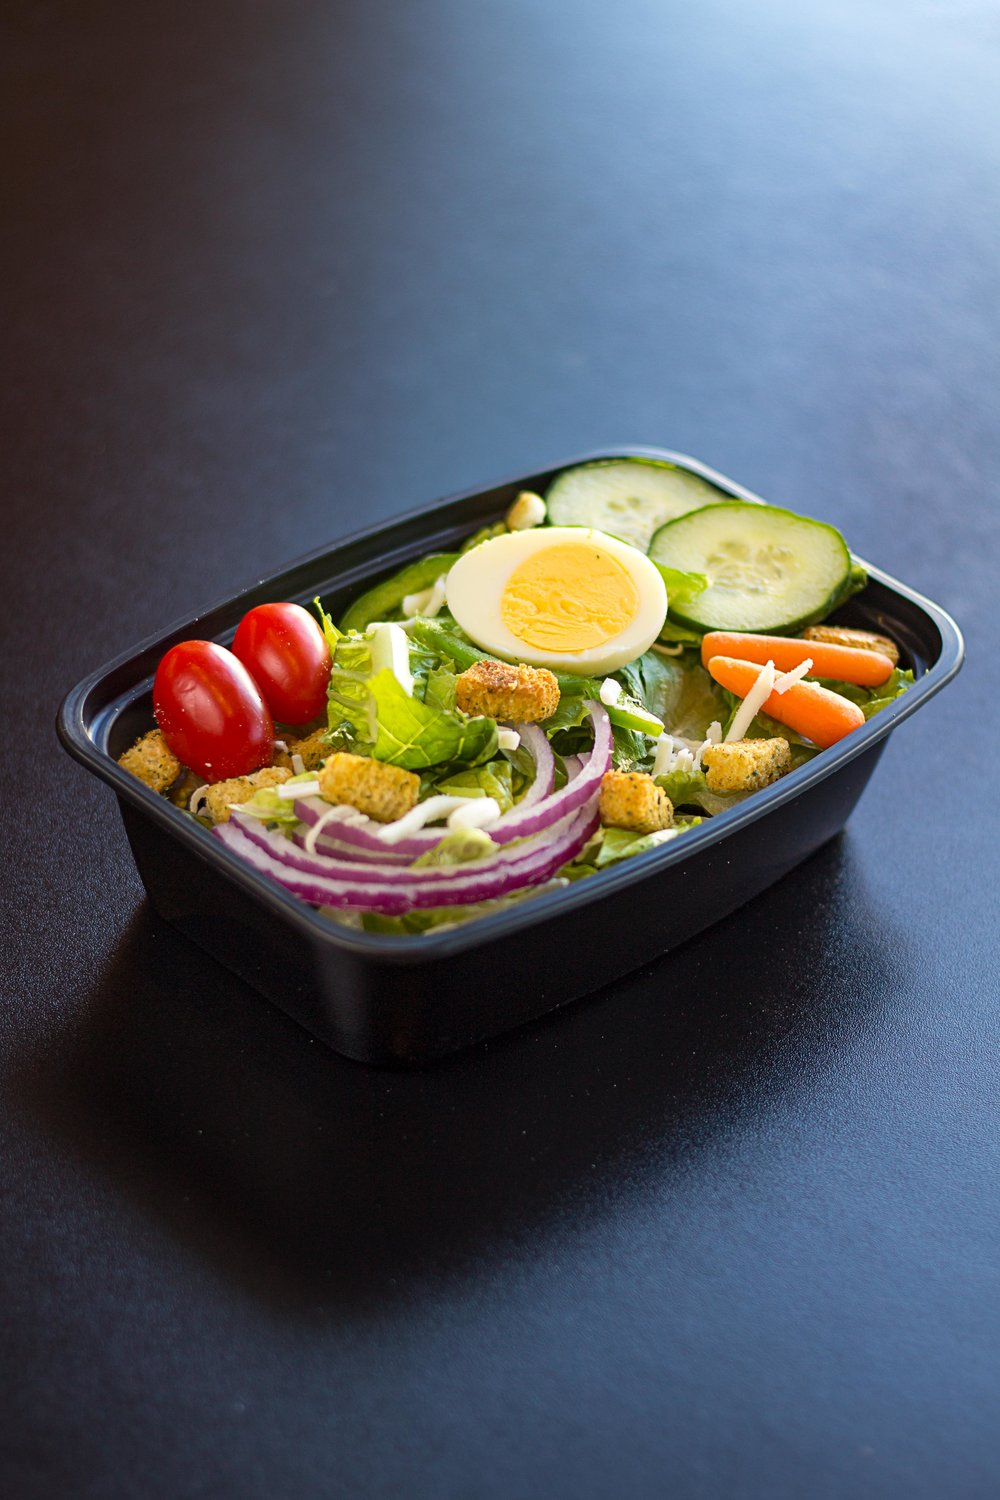 Half Garden Salad- A bed of fresh crisp romaine lettuce topped with tomatoes, cucumbers, carrots, an egg, bell peppers, red onions, cheese & croutons. Served with your choice of dressing!